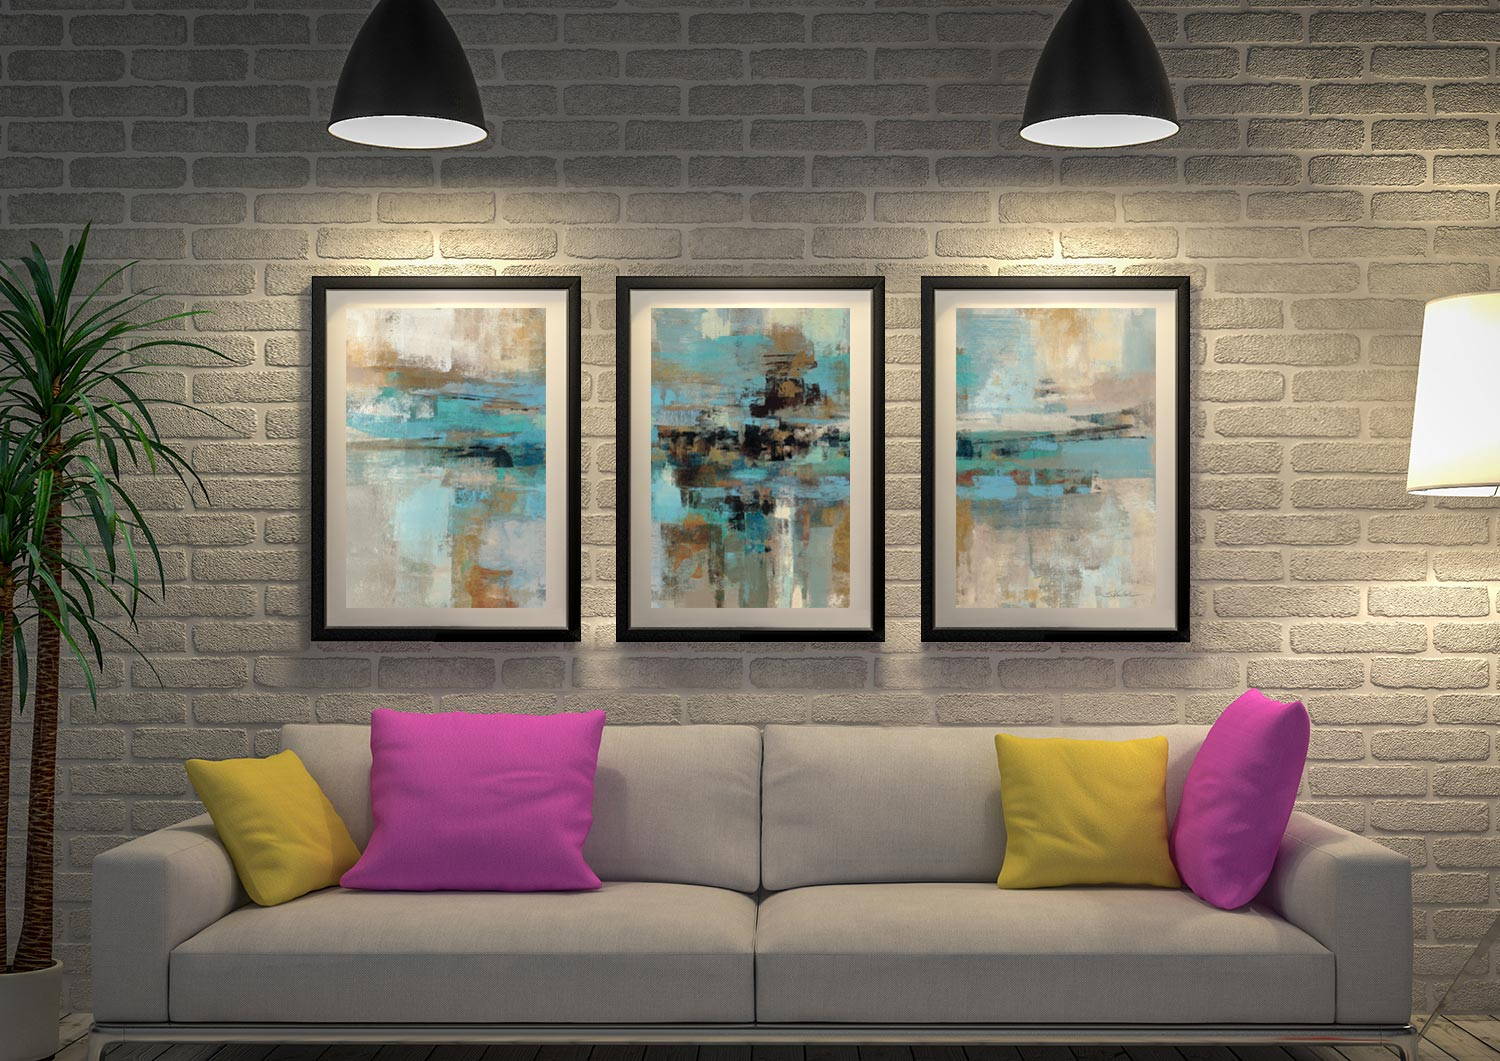 Morning Fjord Silvia Vassileva Triptych Abstract Prints On Canvas